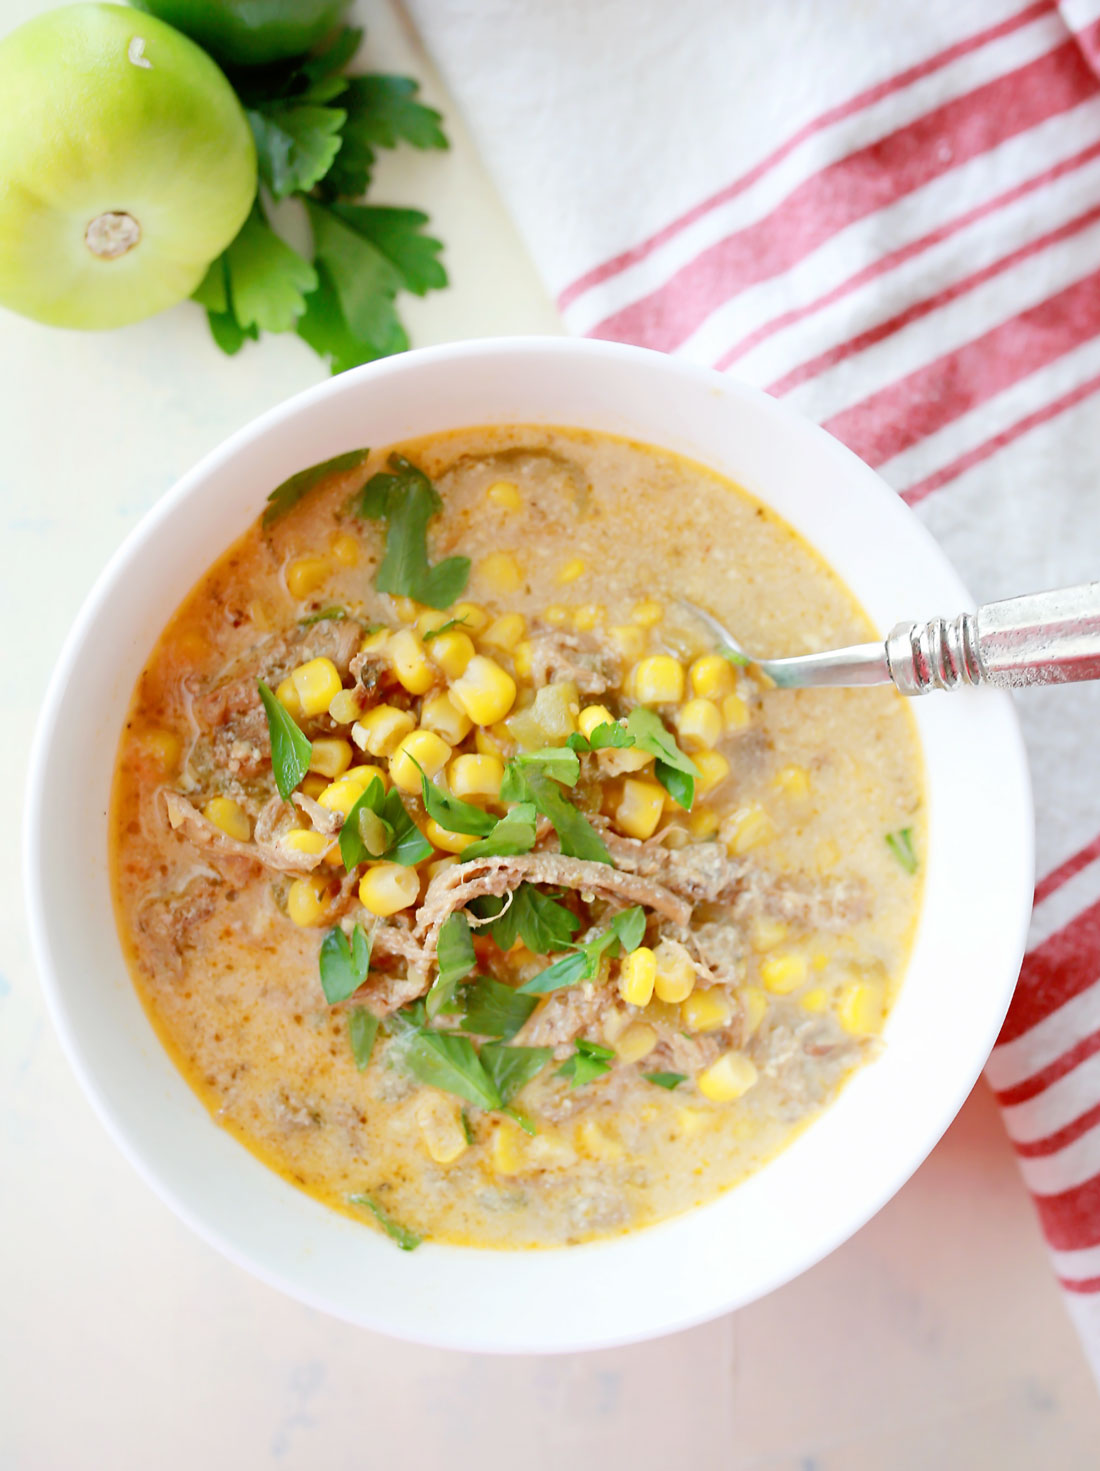 Corn chowder that will rock your world!